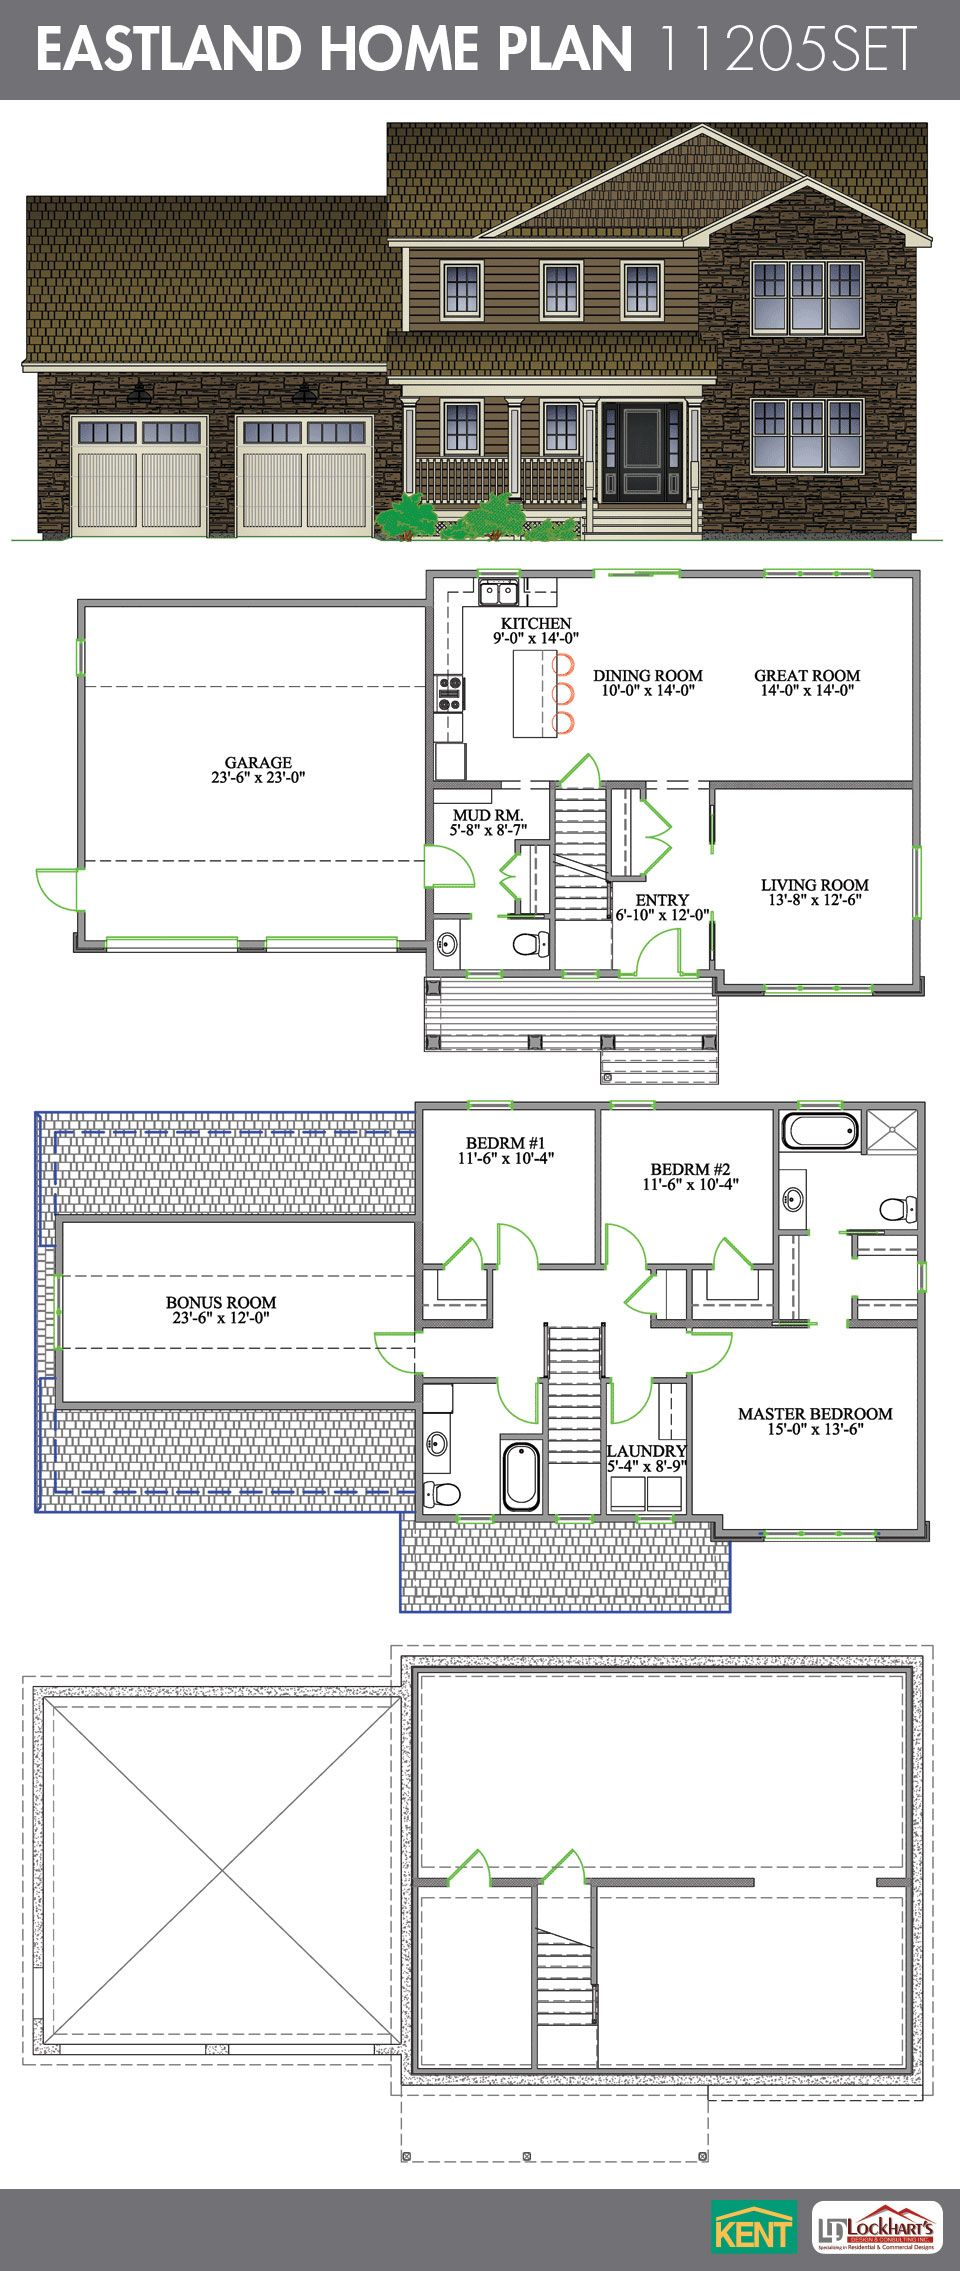 Eastland Home Plan House Plans Open Concept Great Room Kent Building